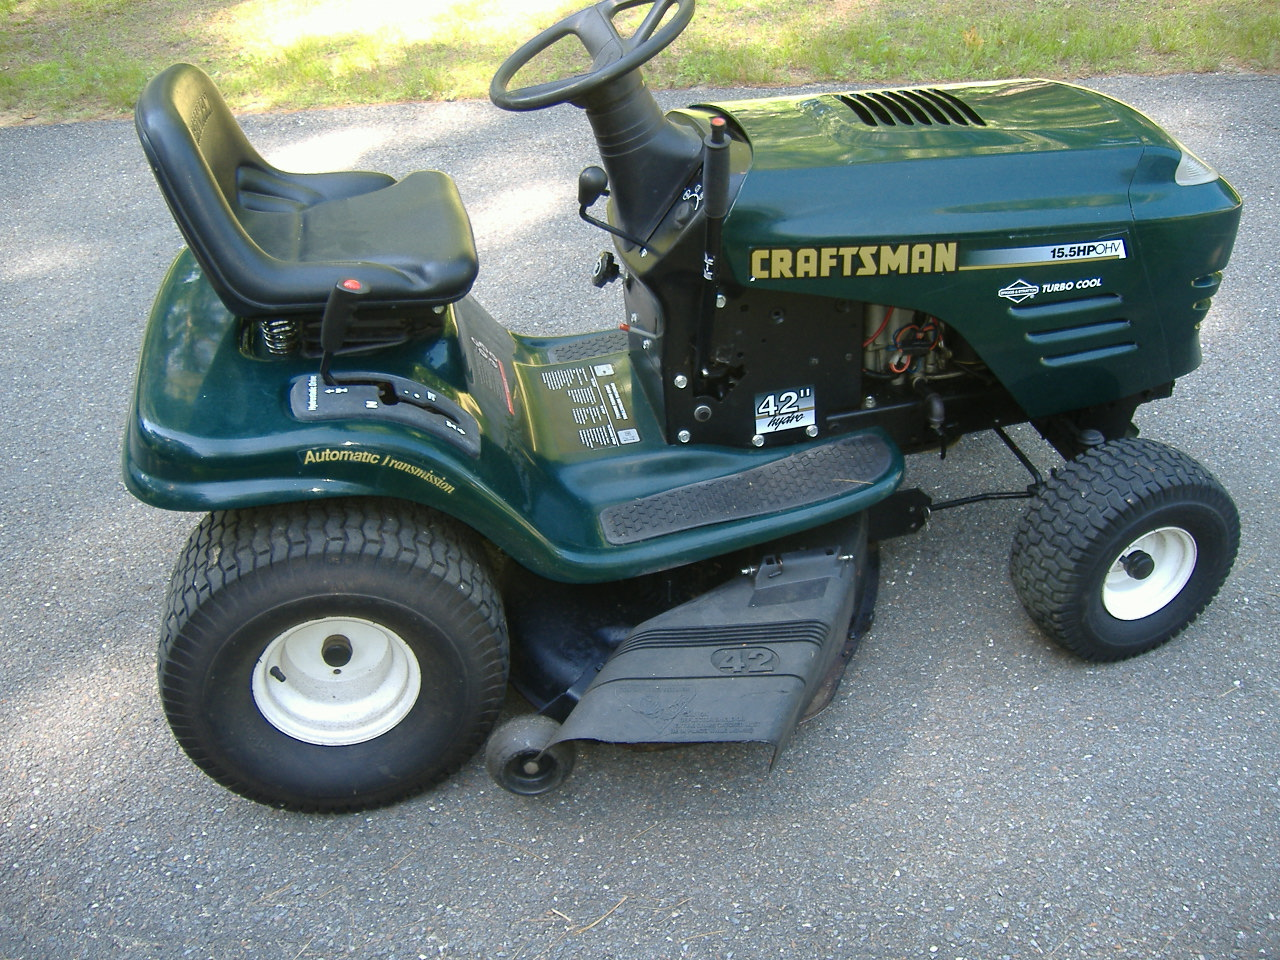 Craftsman Lawn Tractor serviced Townsend Road Power